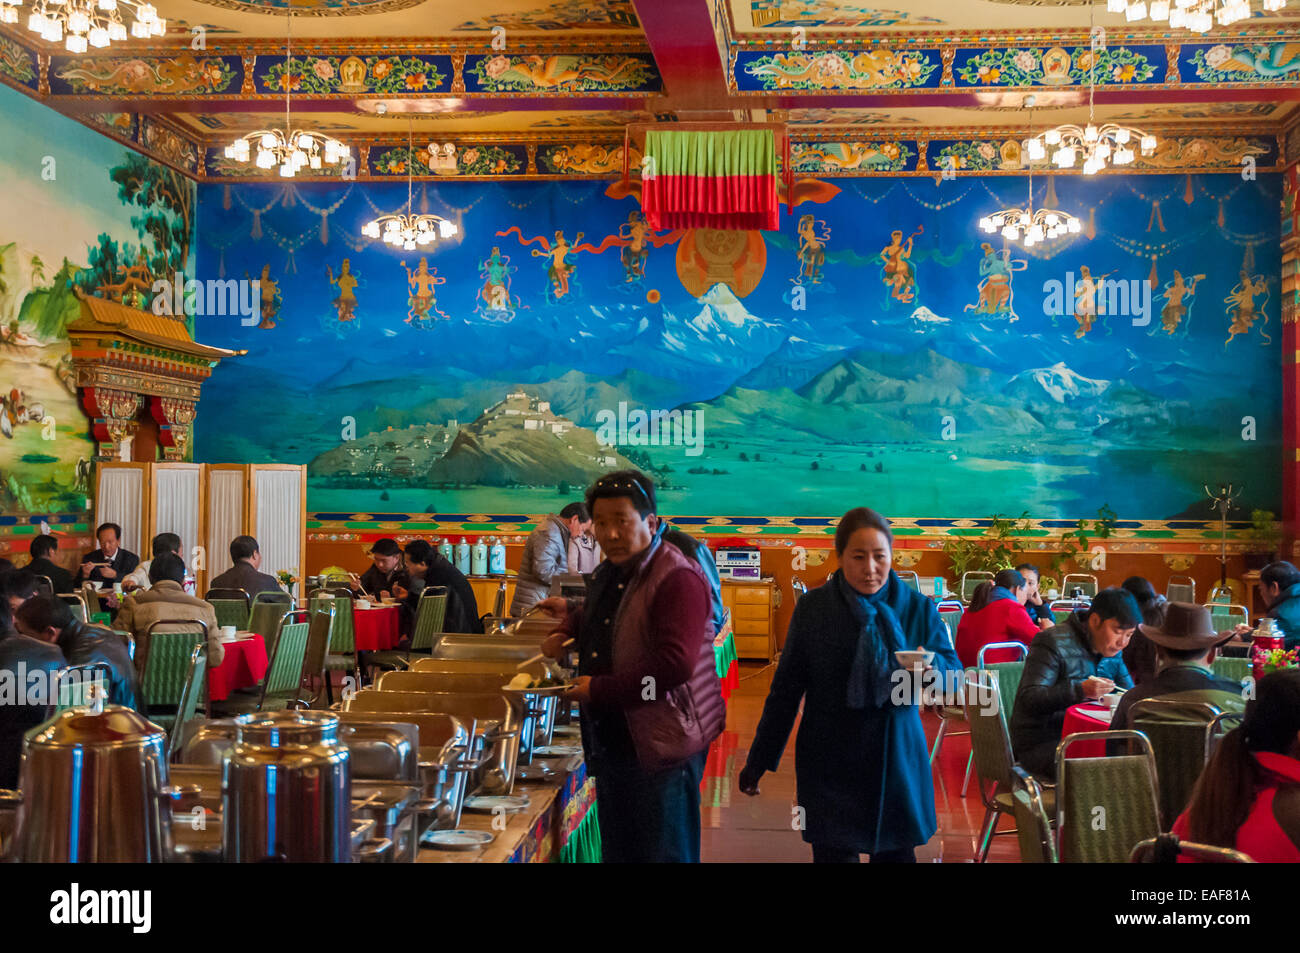 Dining room at the Gyantse Hotel at Gyantse, Tibet, China - Stock Image